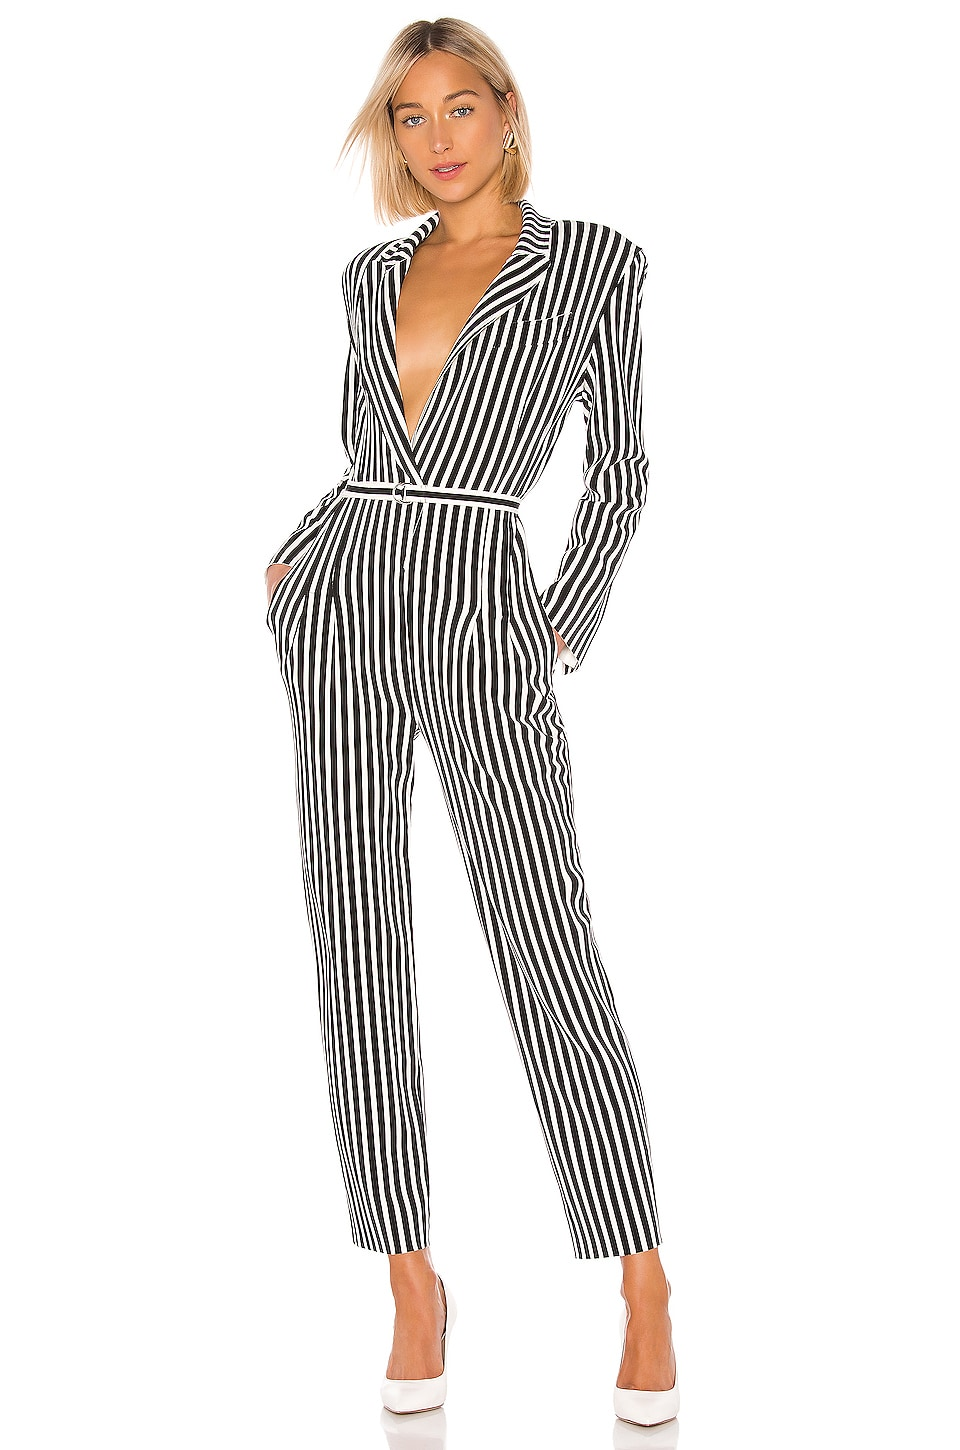 Norma Kamali Single Breasted Tapered Leg Jumpsuit in Uneven Stripe